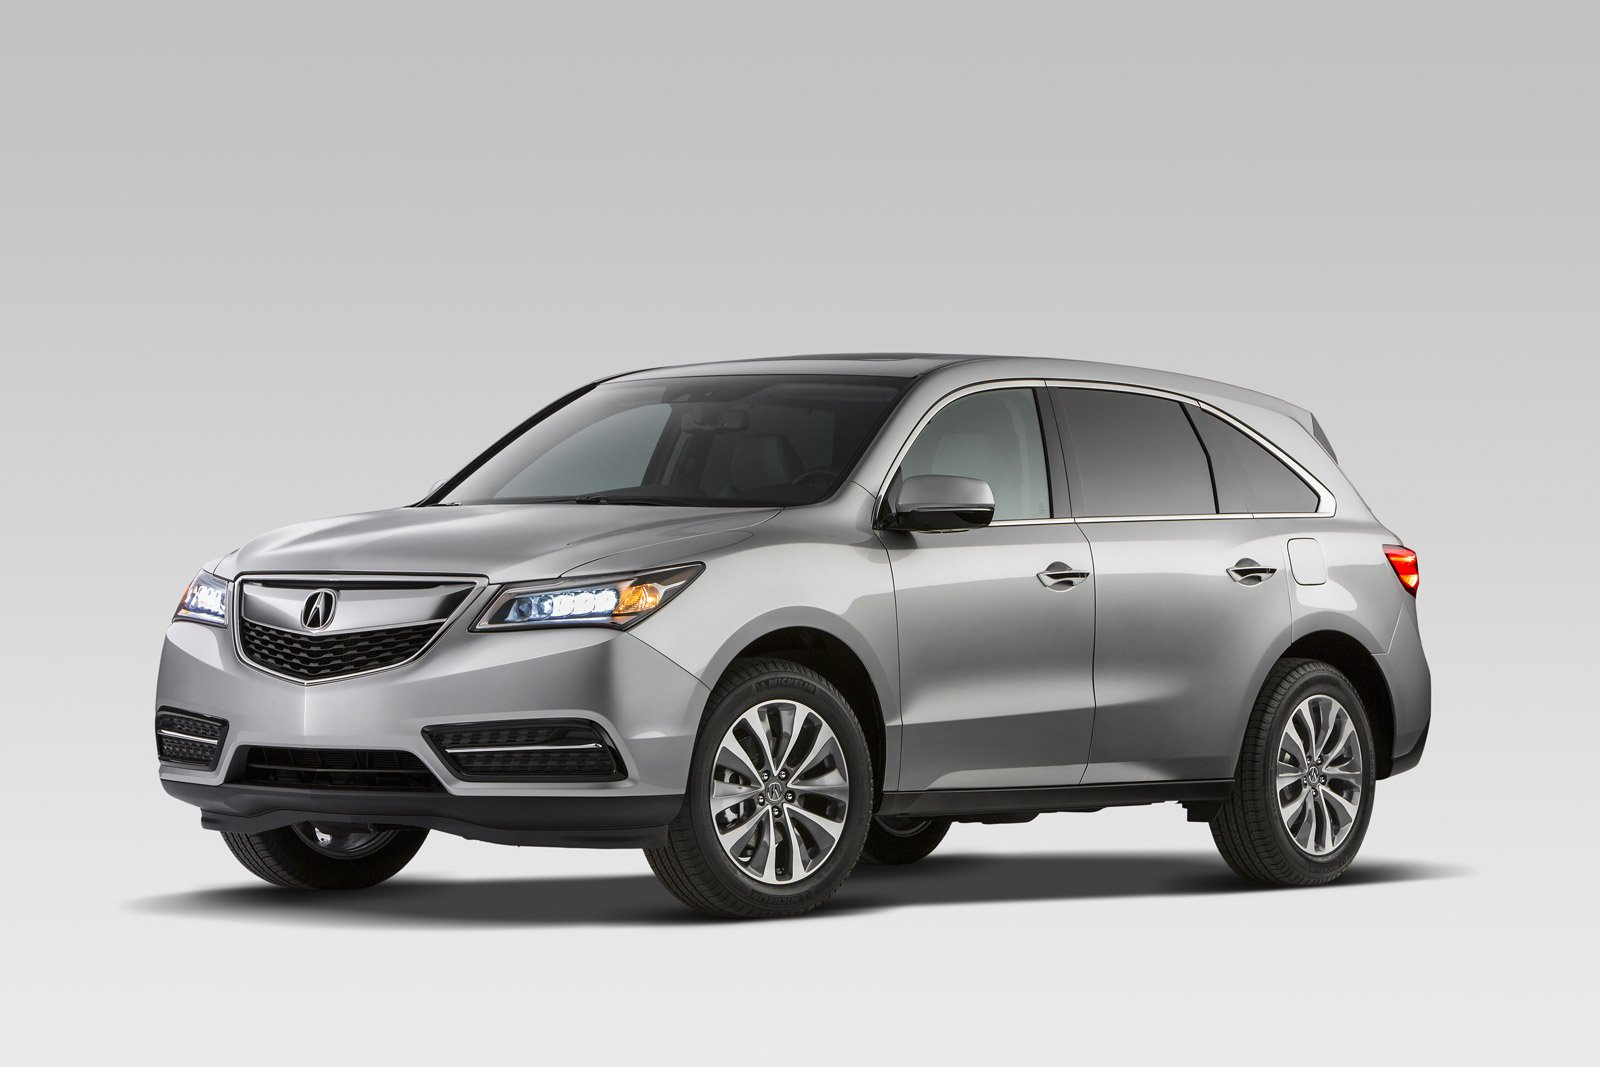 acura mdx pictures #7